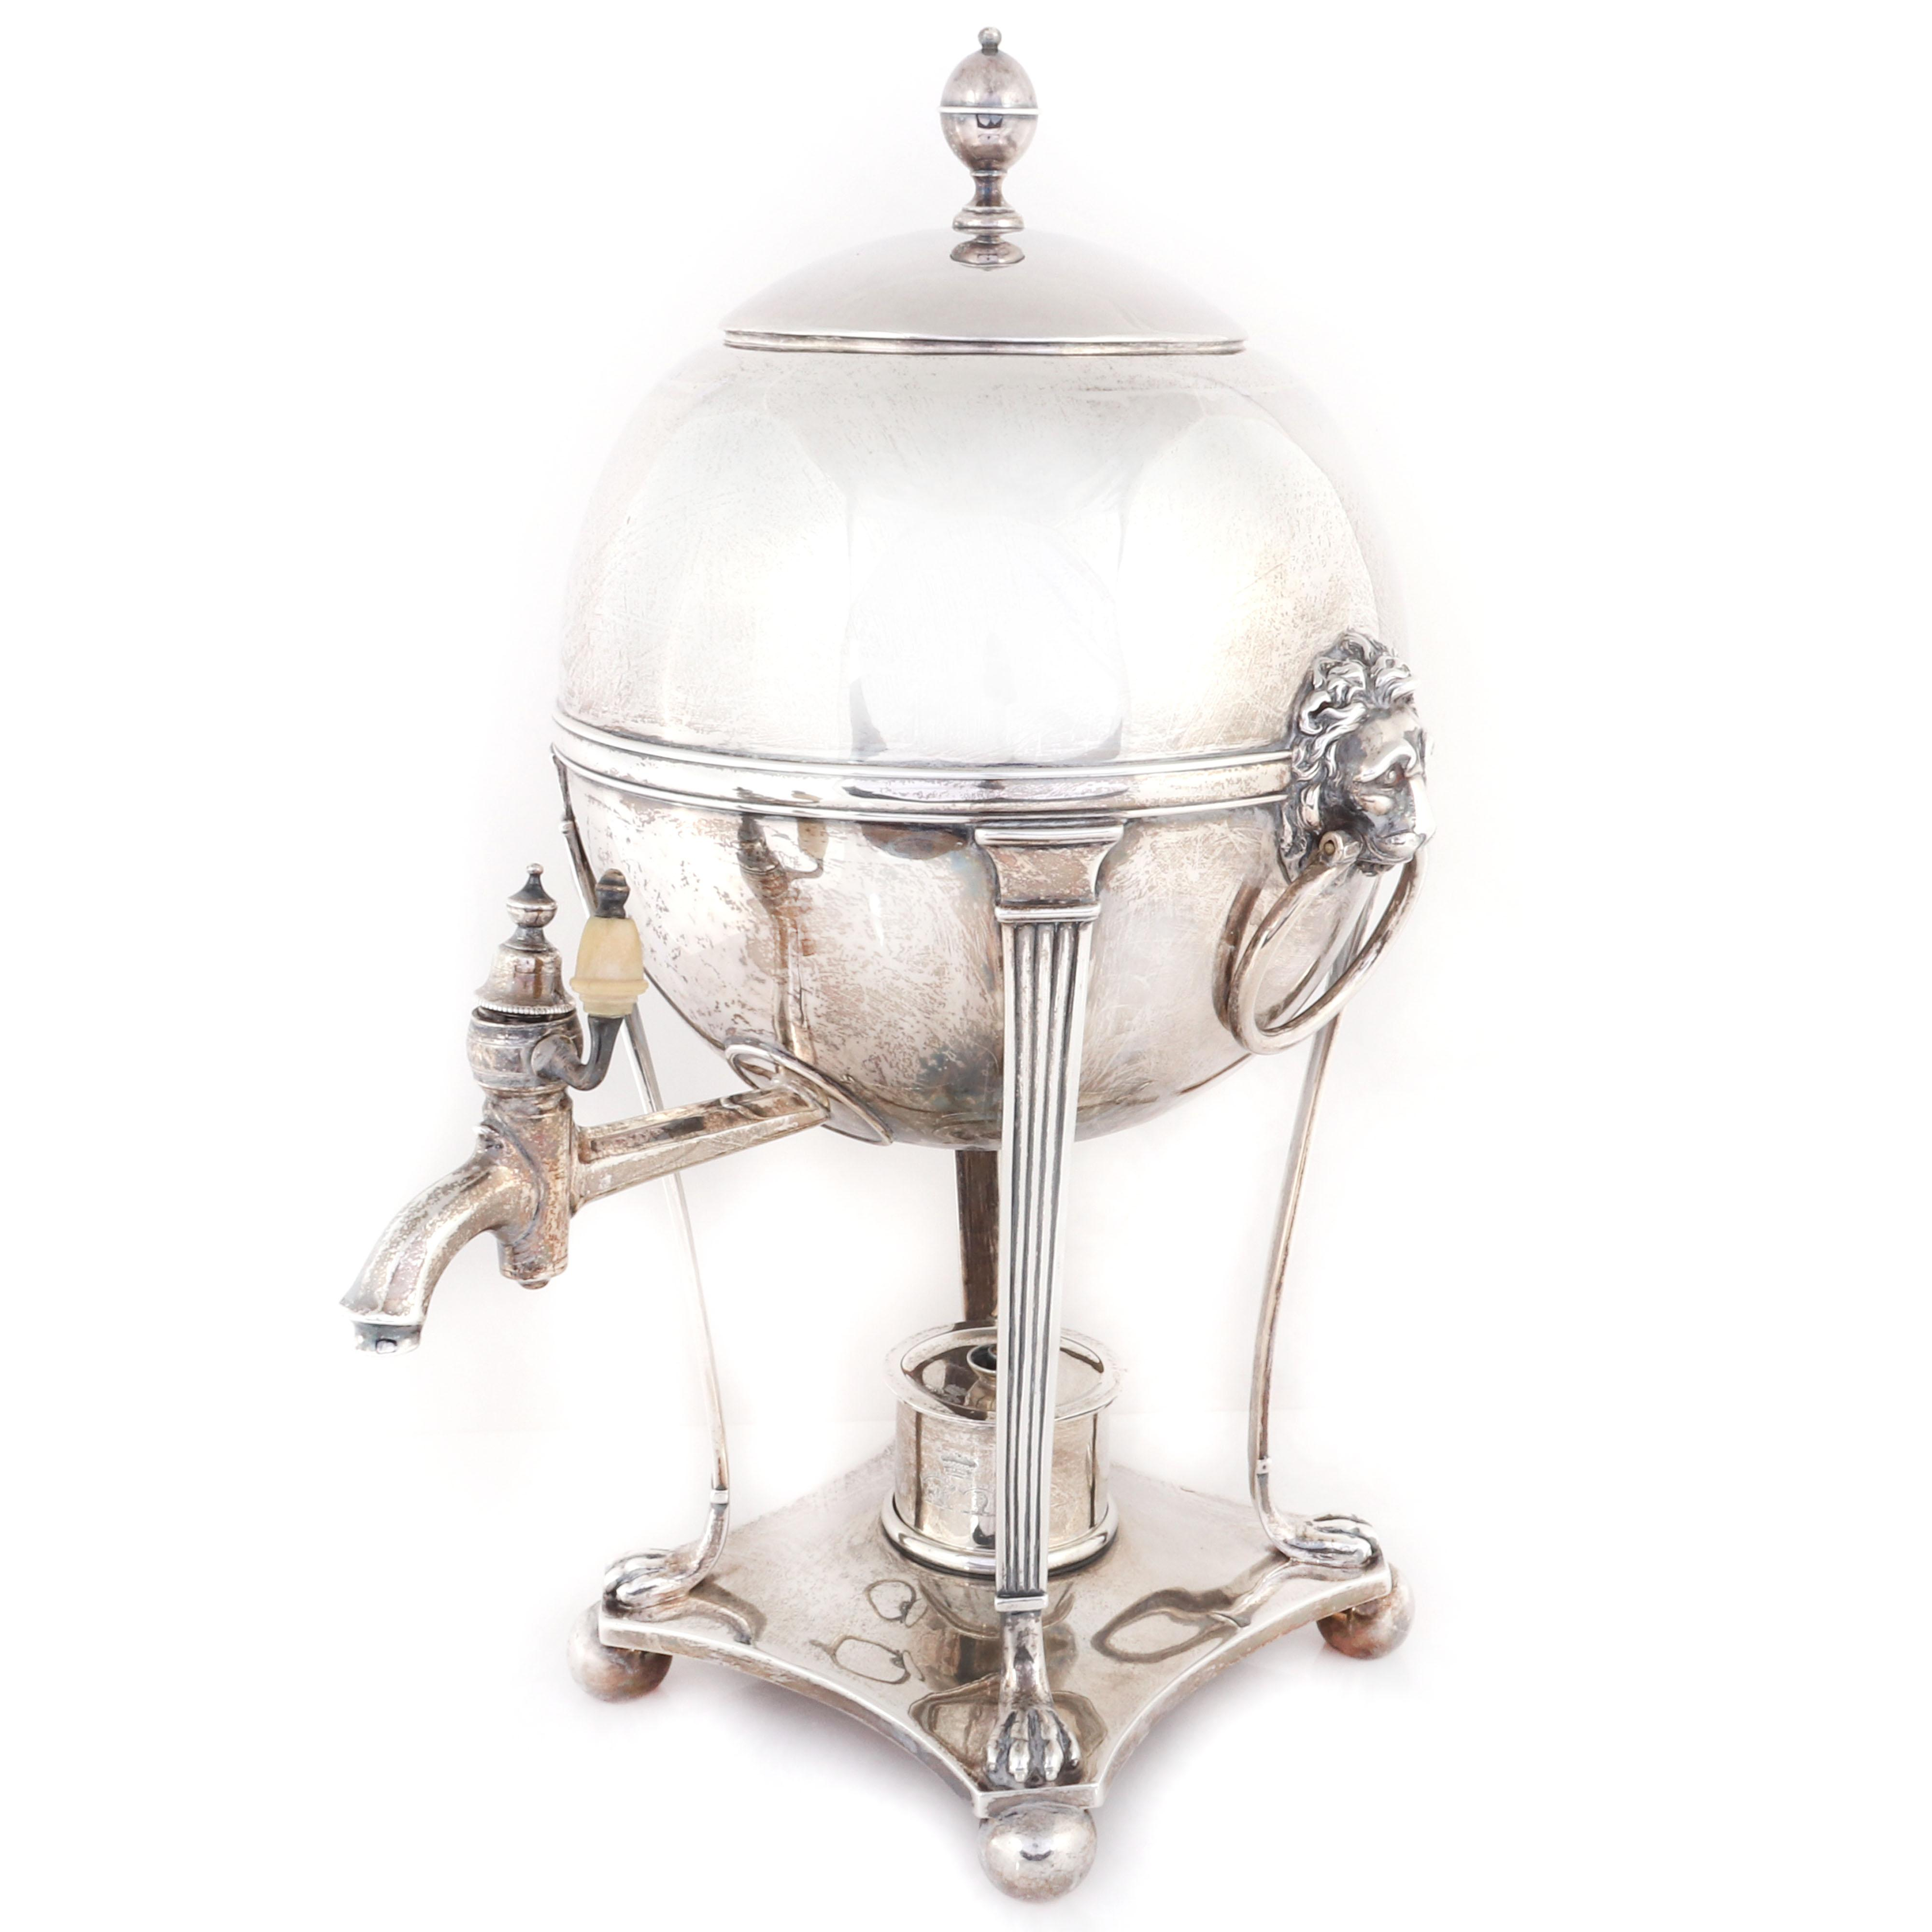 George III Paul Storr, London, Neoclassical sterling silver hot water urn, 1804 hallmark. 16 1/2 inches to the top of the urn finial.